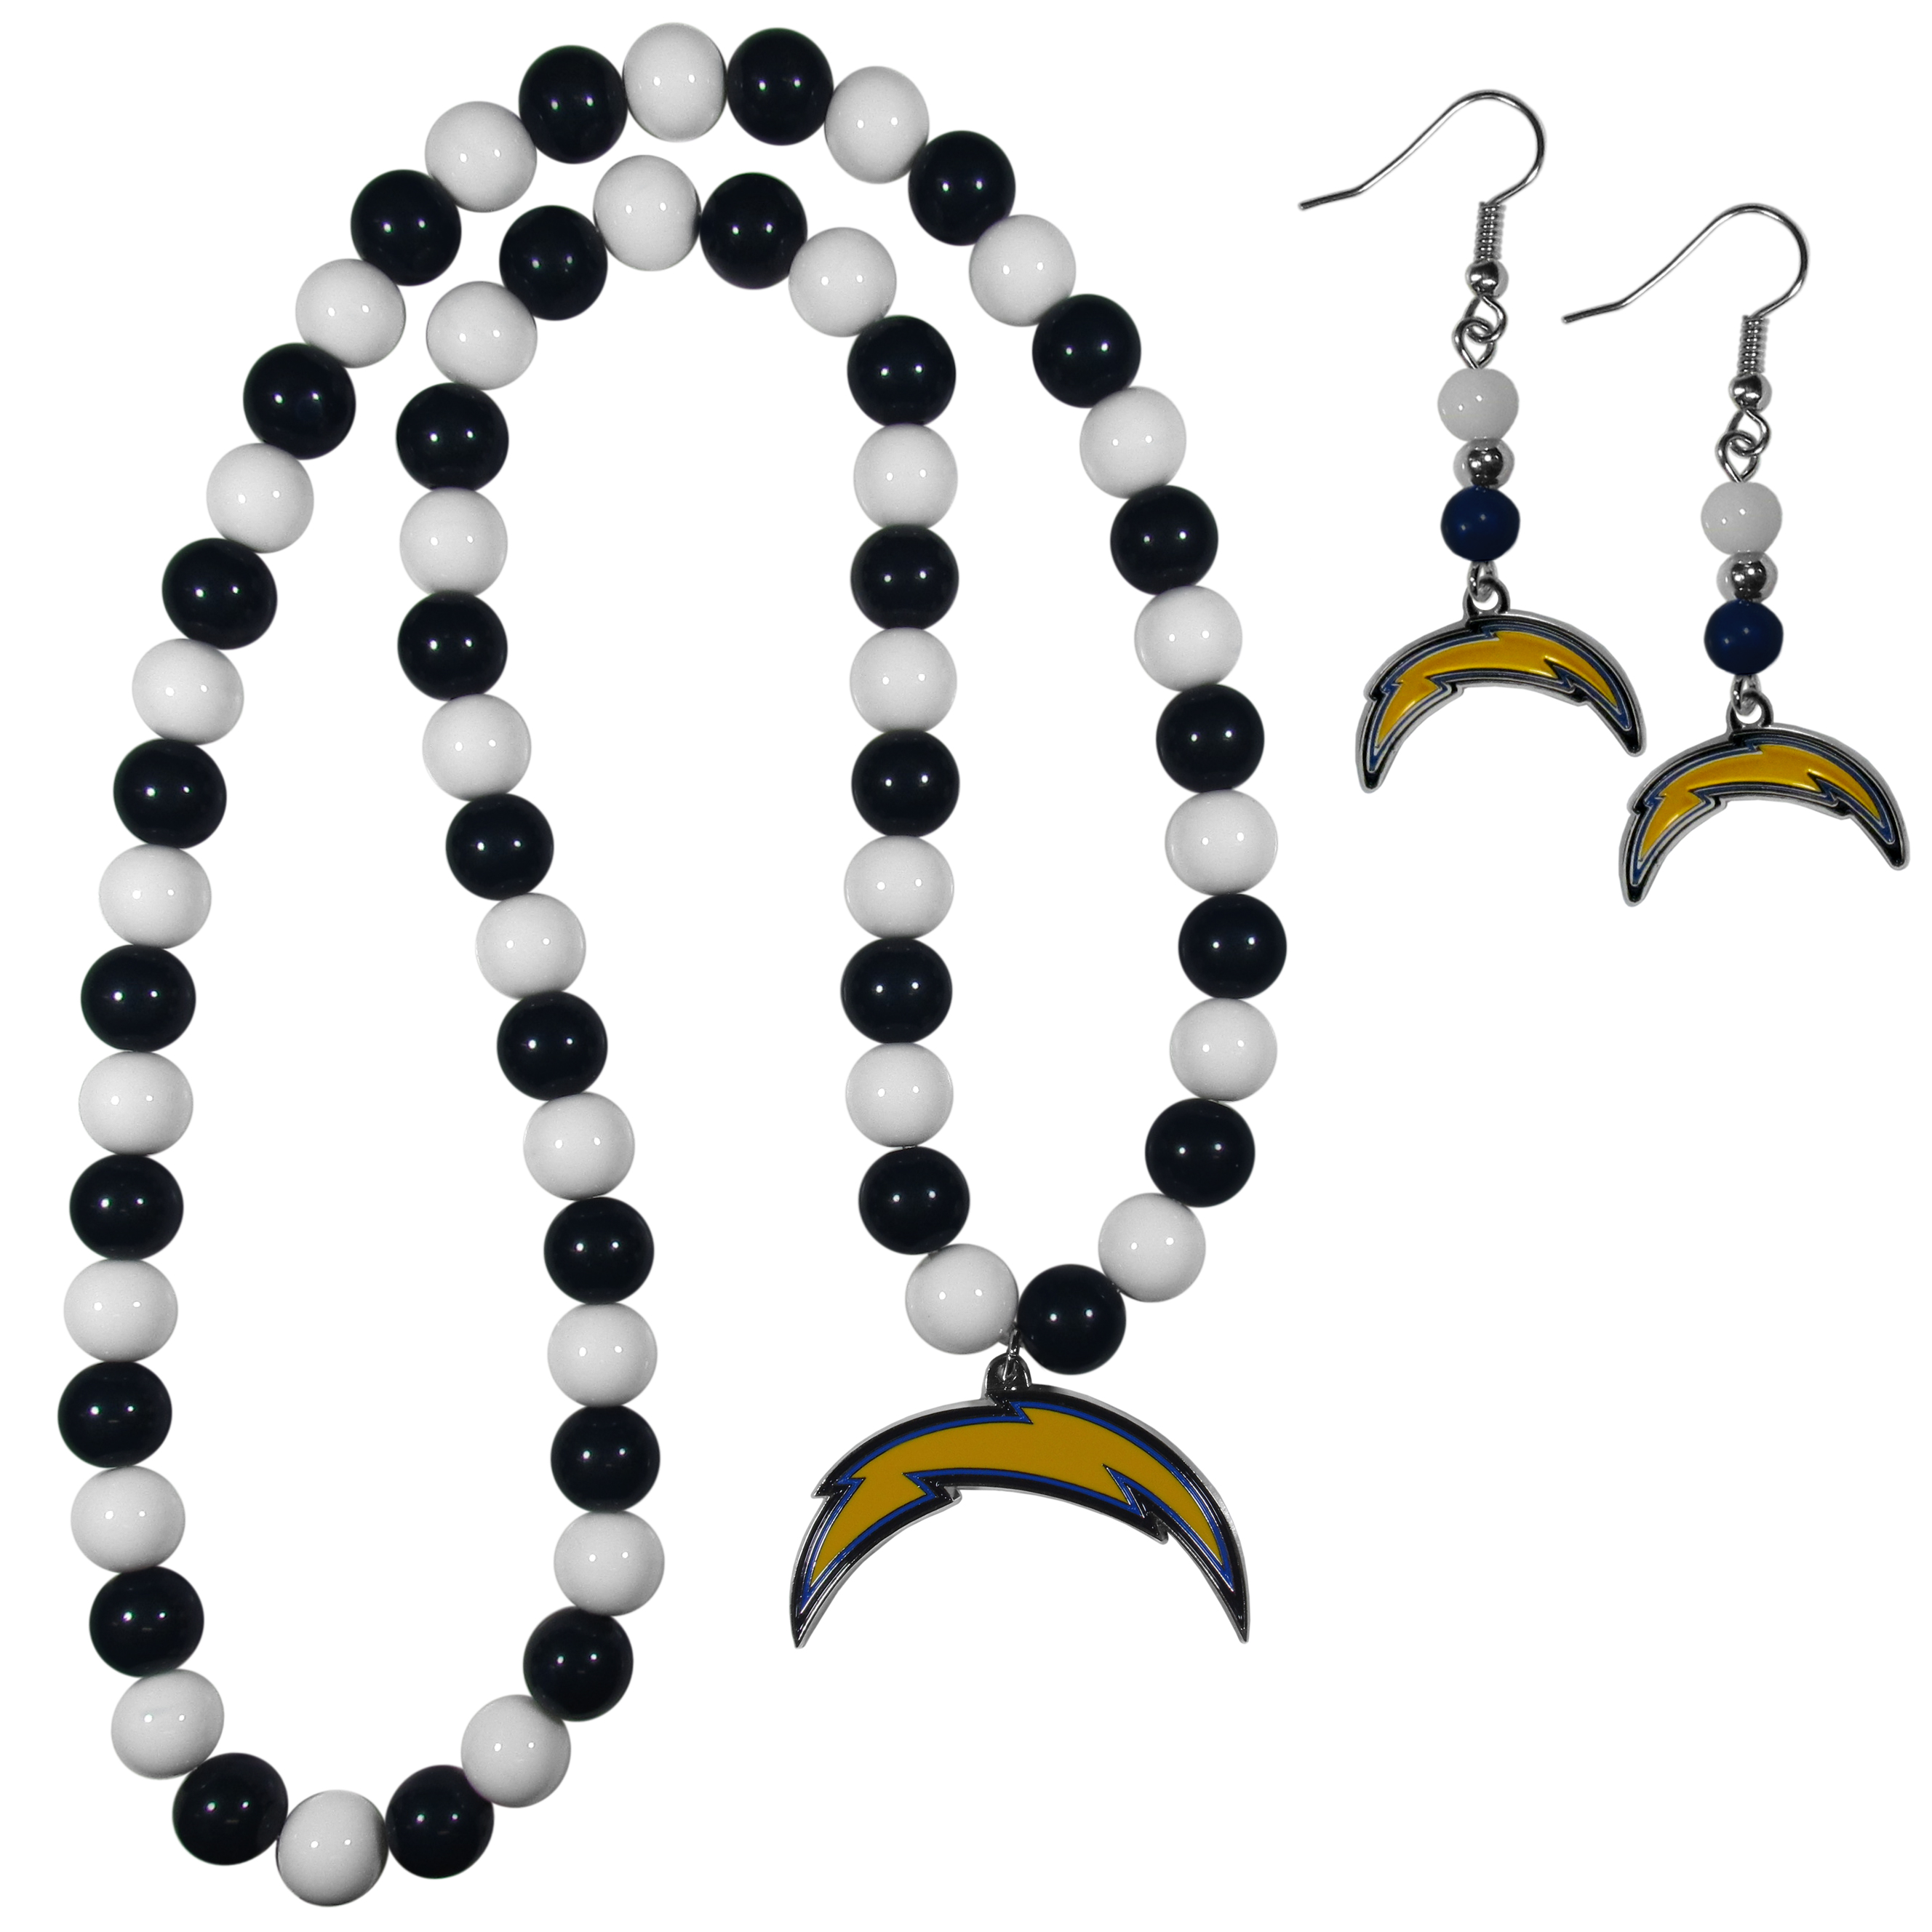 Los Angeles Chargers Fan Bead Earrings and Necklace Set - These fun and colorful Los Angeles Chargers fan bead jewelry pieces are an eyecatching way to show off your team spirit. The earrings feature hypoallergenic, nickel free fishhook post and 2 team colored beads with a beautifully carved team charm to finish this attractive dangle look. The mathcing bracelet has alternating team colored beads on a stretch cord and features a matching team charm.